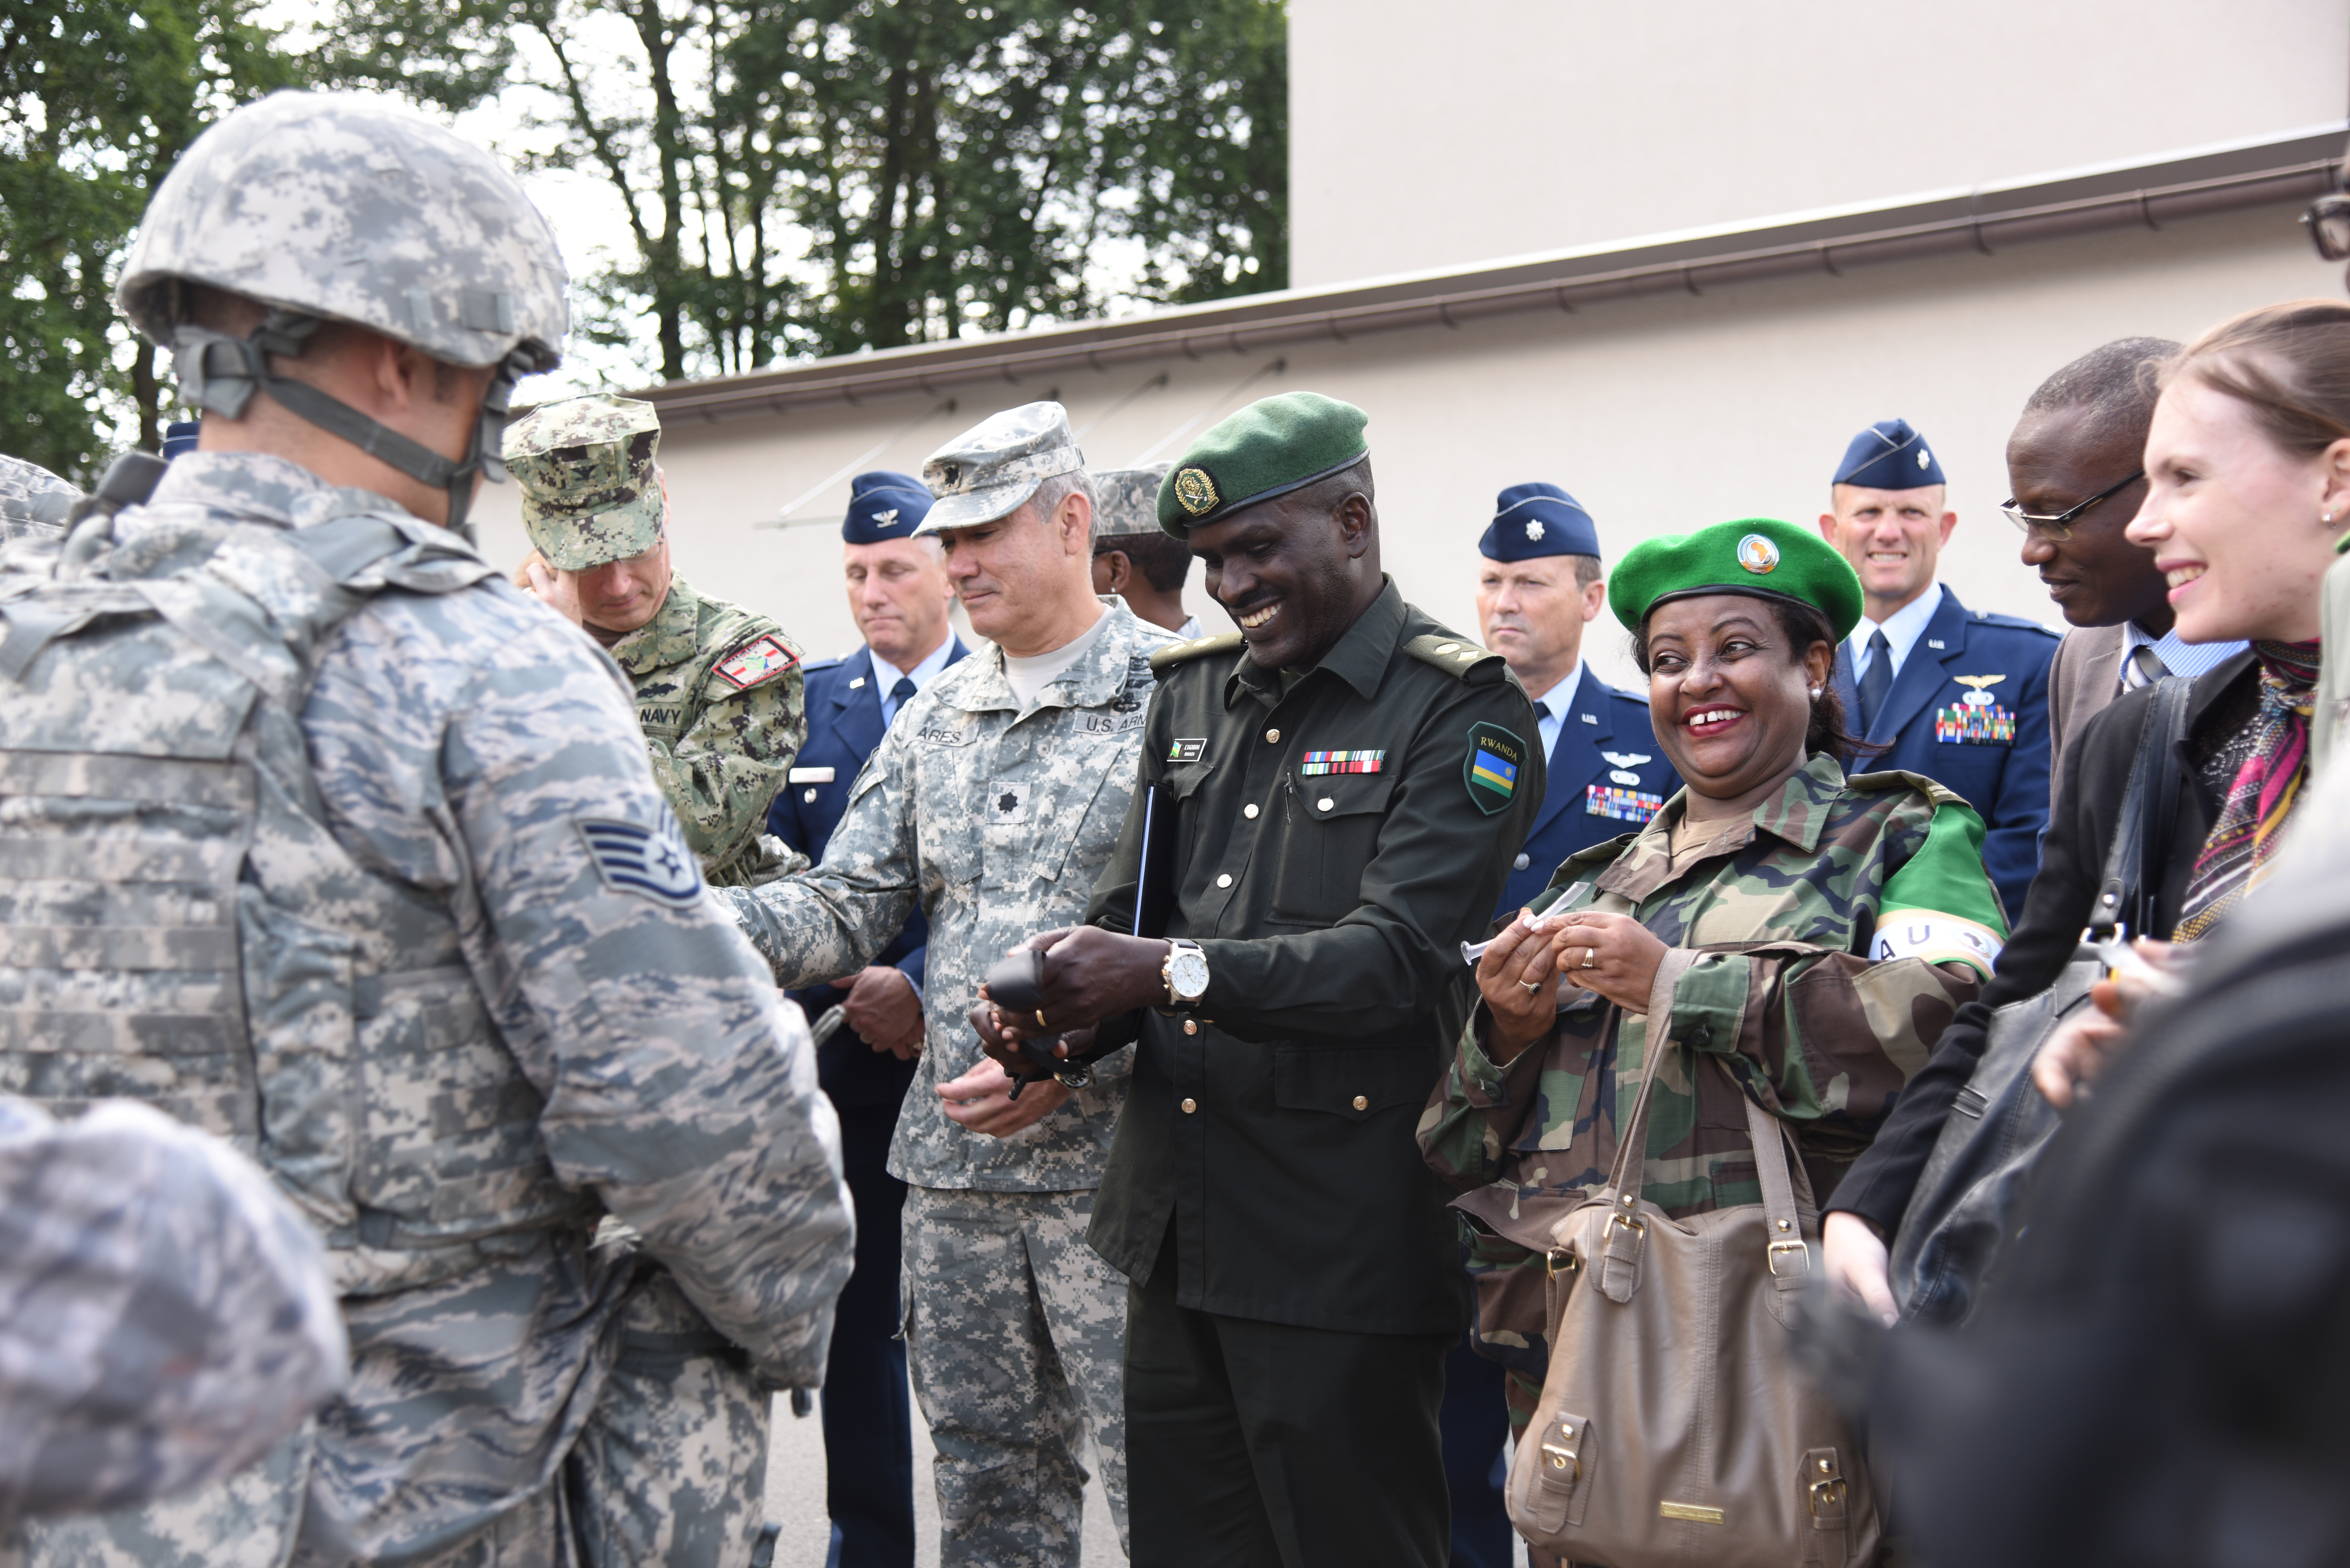 African Partnership Flights Surgeon General Symposium attendees learn tactical casualty combat care procedures during a demonstration at Ramstein AB, Germany, Aug. 25, 2015. This event focused on strengthening U.S. strategic partnerships with leading nations in Africa to enhance regional cooperation and interoperability.   (U.S. Air Force photo by Master Sgt. Charlene M. Spade/released)